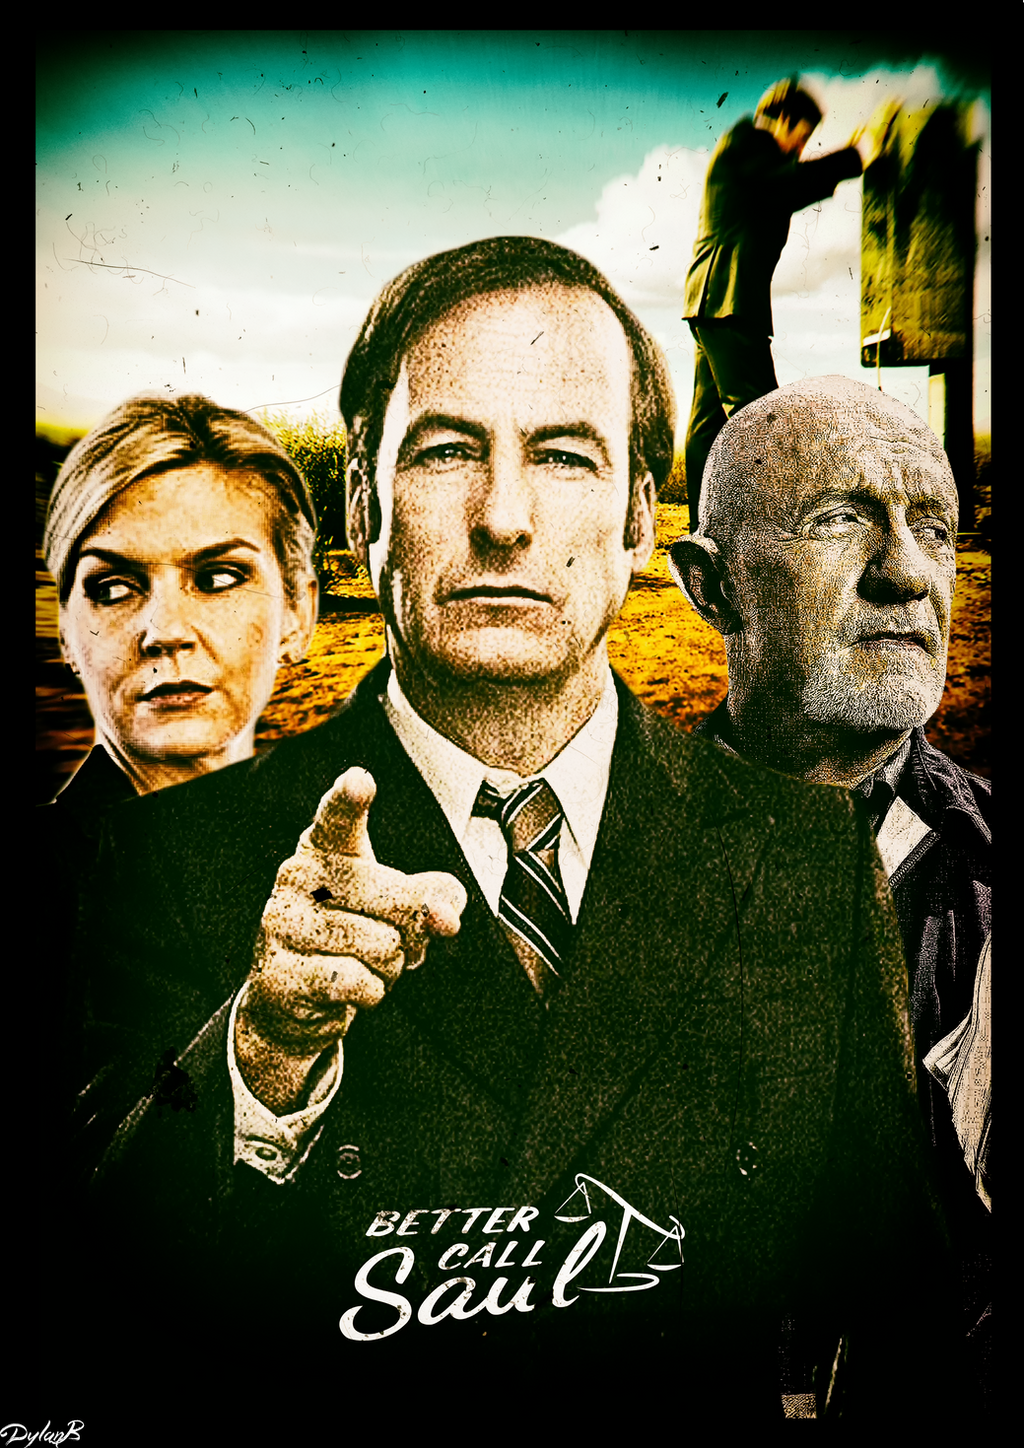 Better Call Saul Wallpaper Hd Wallpapers Images